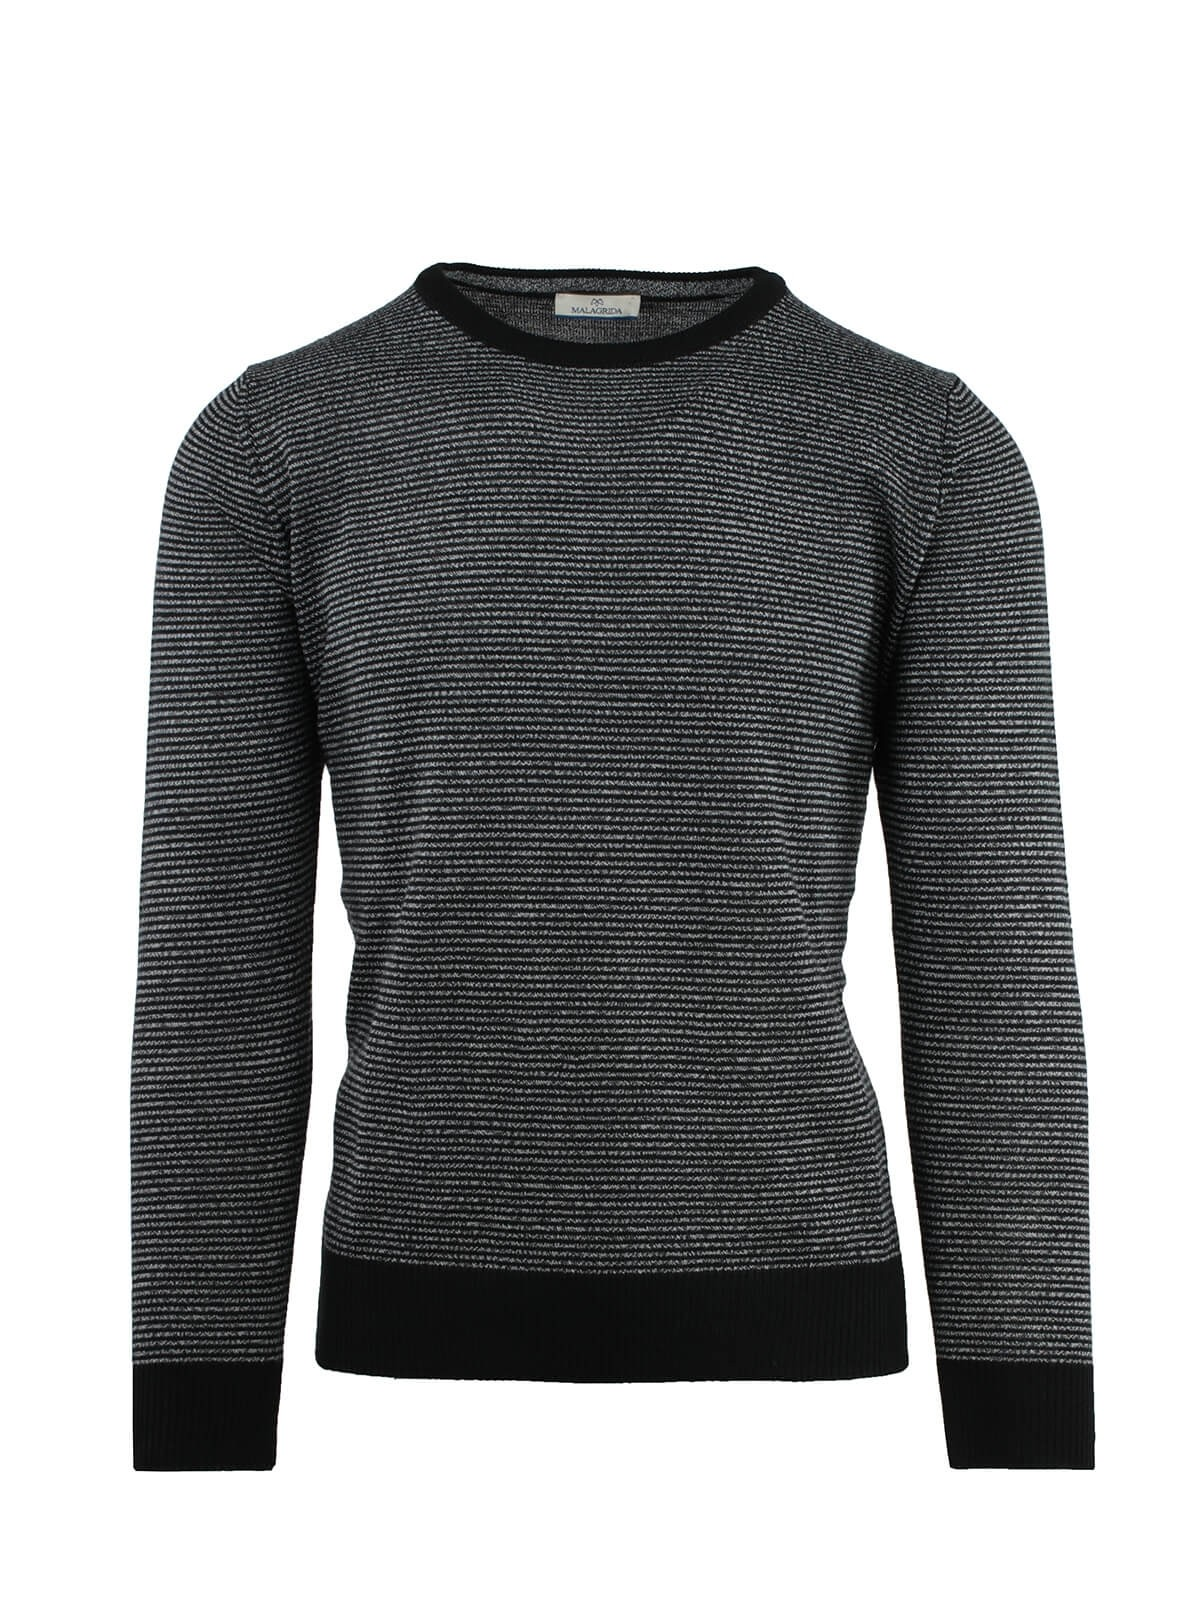 ROUND NECK SMALL LINES